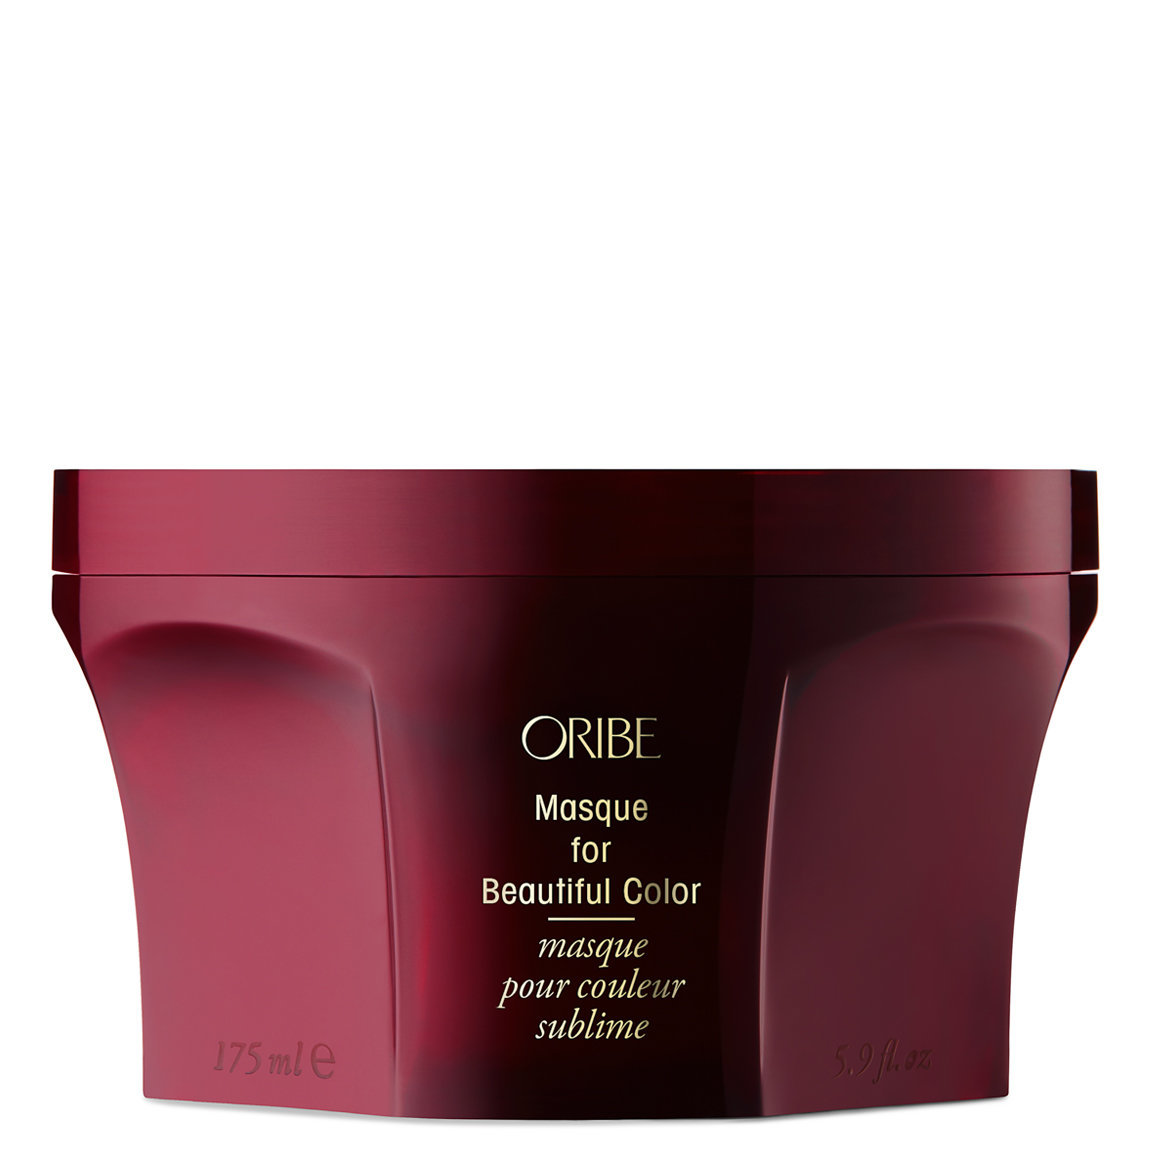 Oribe Masque for Beautiful Color 5.9 oz alternative view 1 - product swatch.